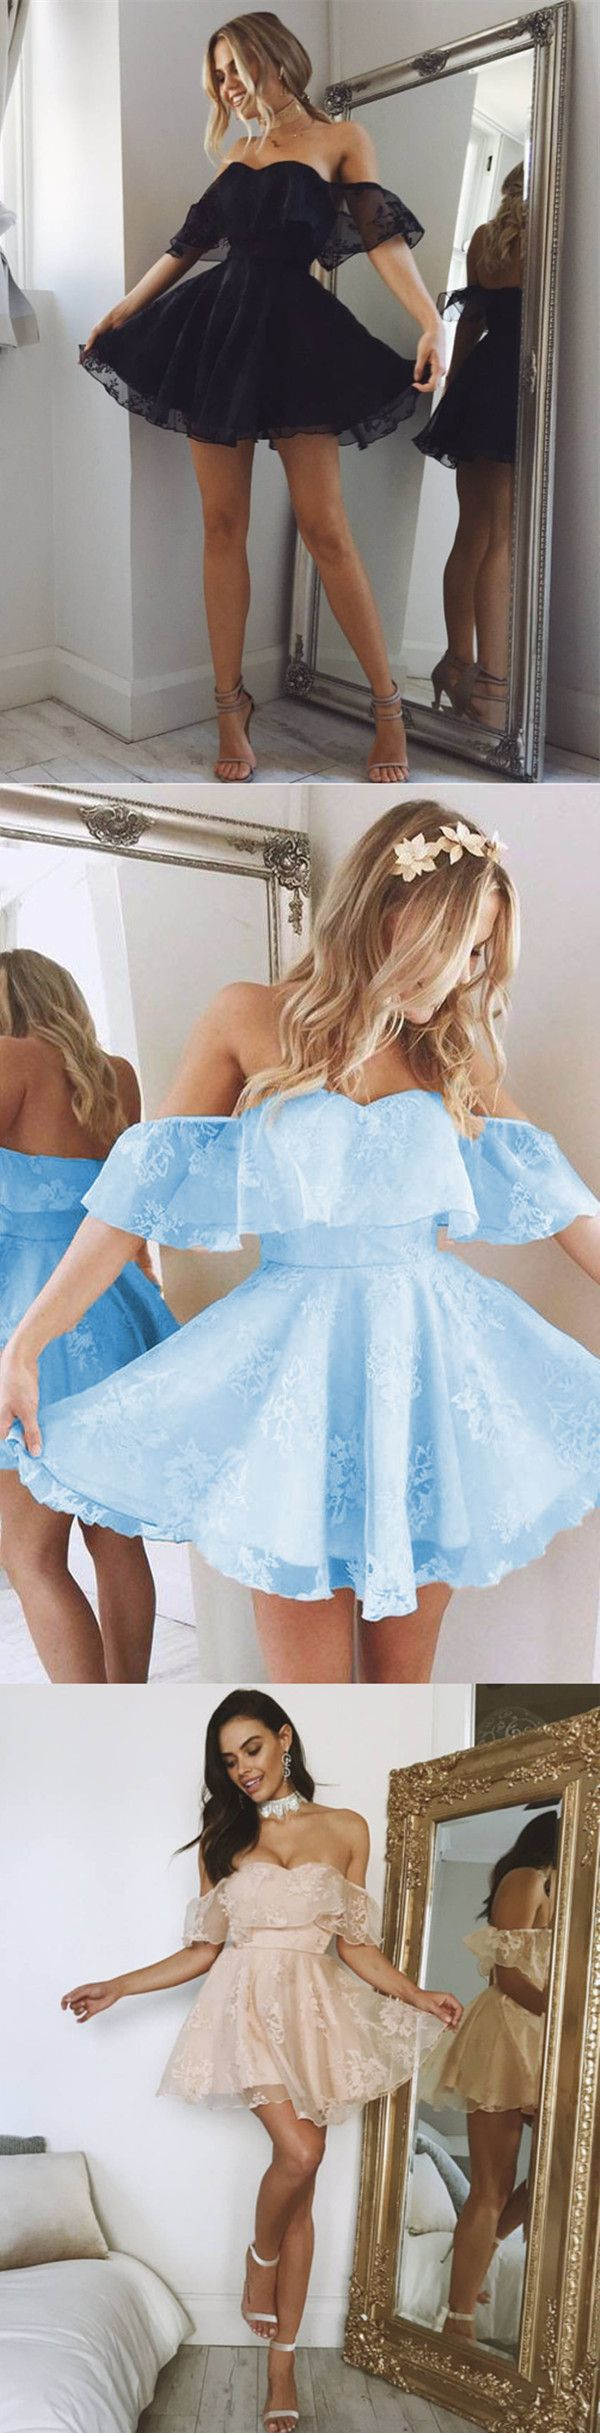 Short A-line Sweetheart Ruffles Shoulder Homecoming Dresses 2017 Cute Lace Prom Dresses For Graduation Party